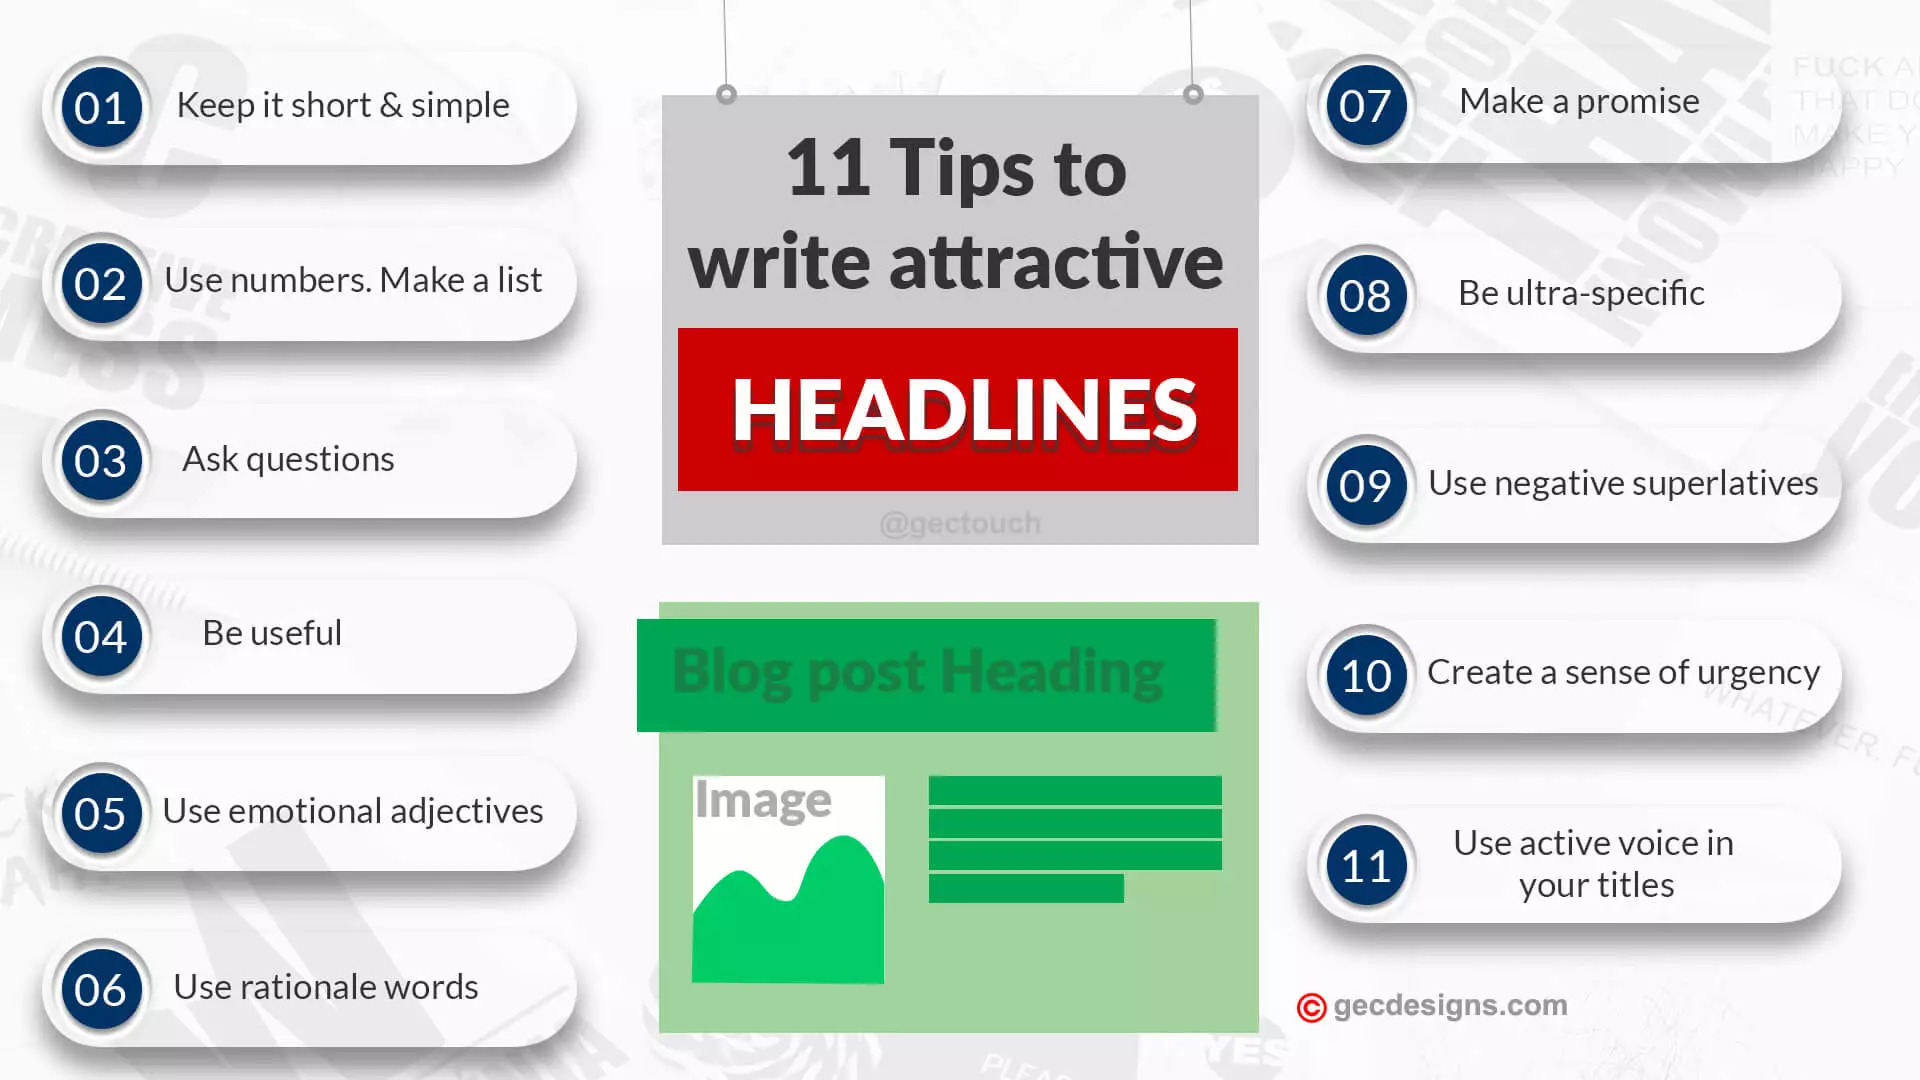 Tips to write attractive headline infographic